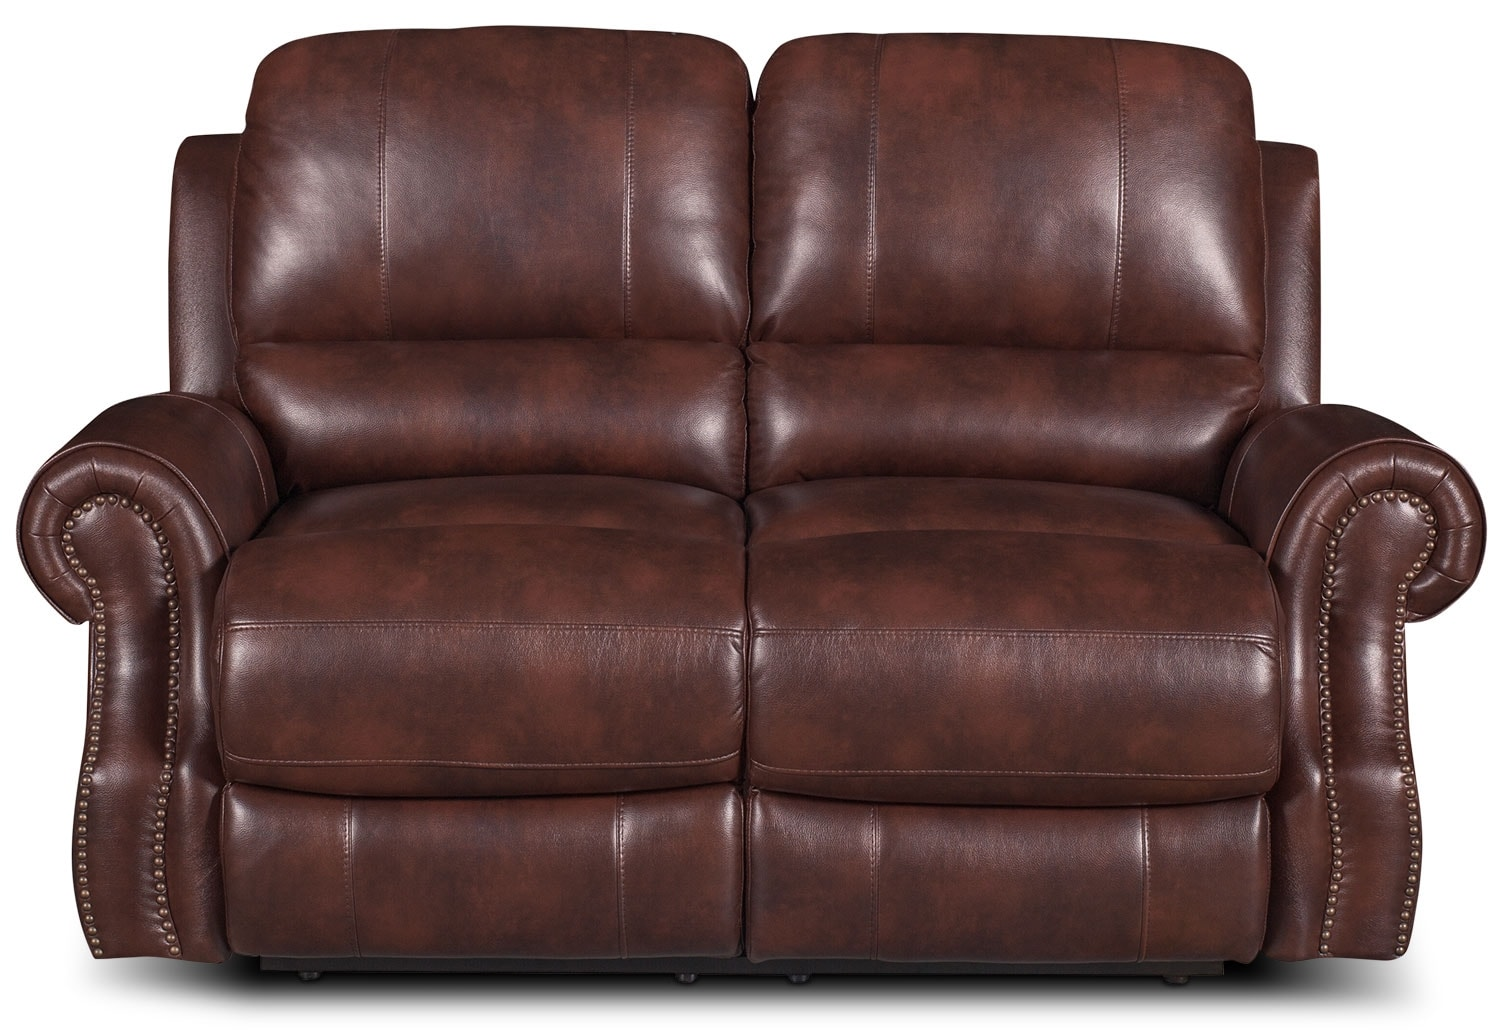 magnum leather look fabric power reclining loveseat. Black Bedroom Furniture Sets. Home Design Ideas